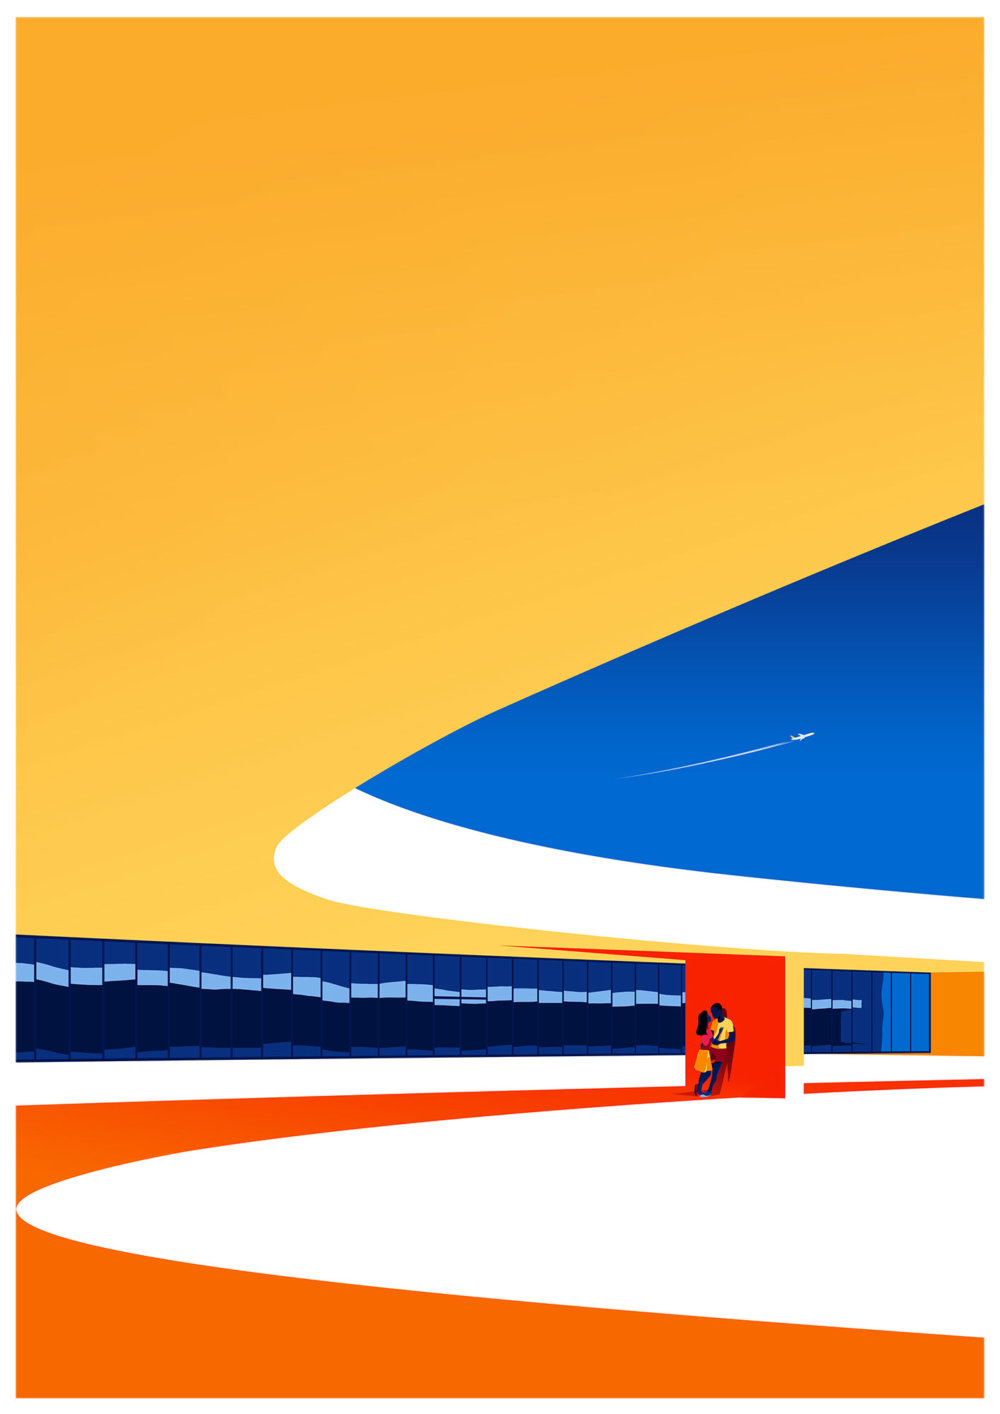 Utopia Architectural Illustration Series Featuring Oscar Niemeyers Design Lines By Levente Szabo 1